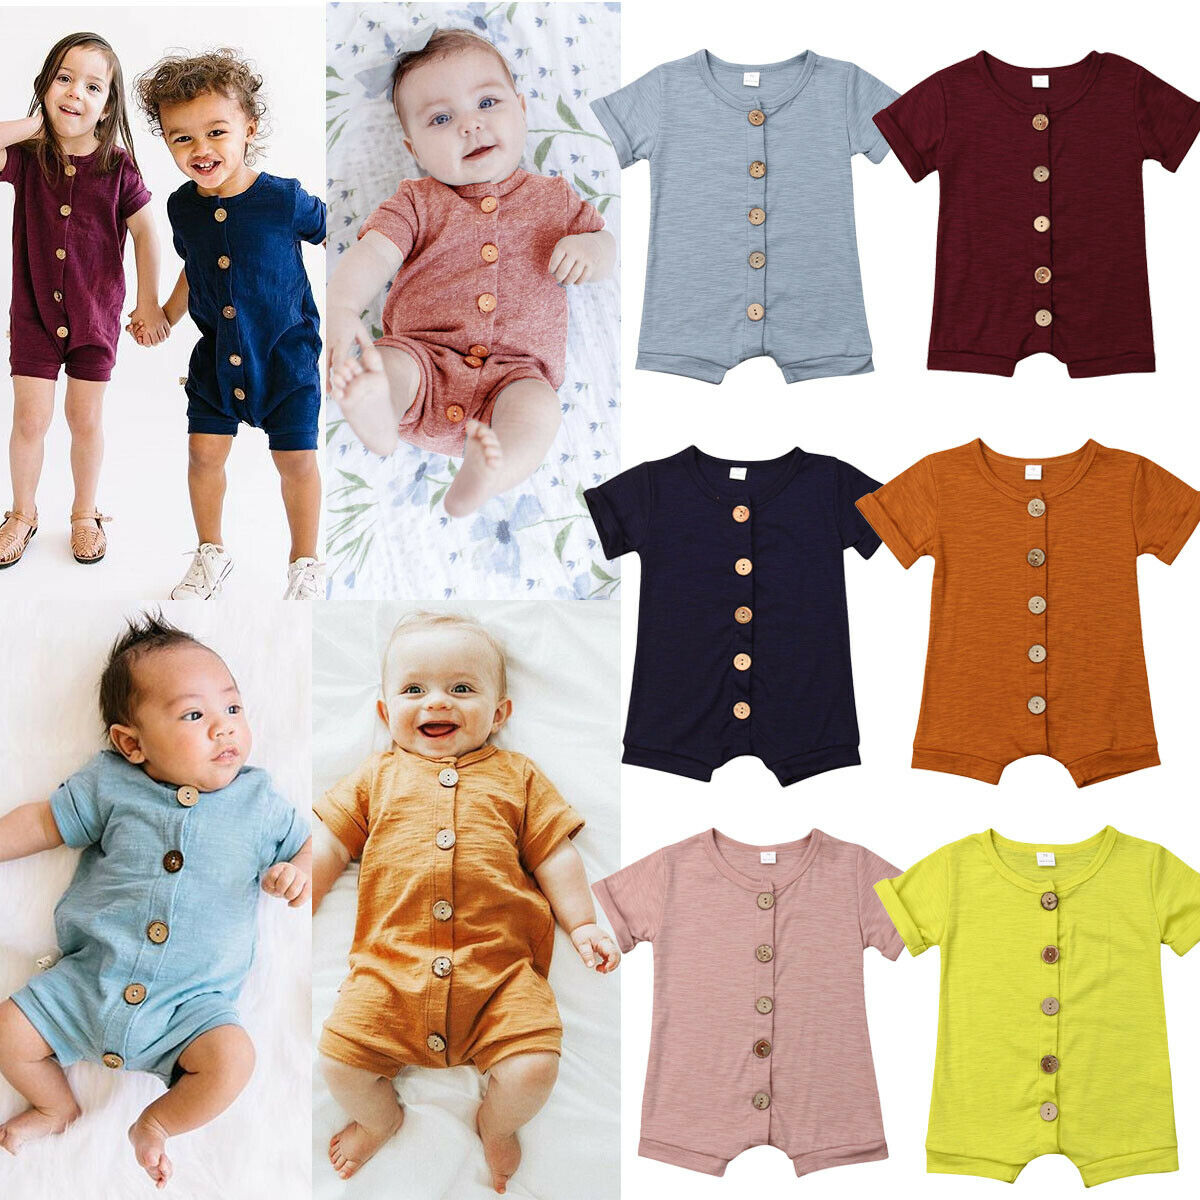 Pudcoco Baby Kids Jumpsuits 0-24M NEW Summer Infant Baby Boy Girl   Romper   Jumpsuit Sunsuit Outfit Clothes